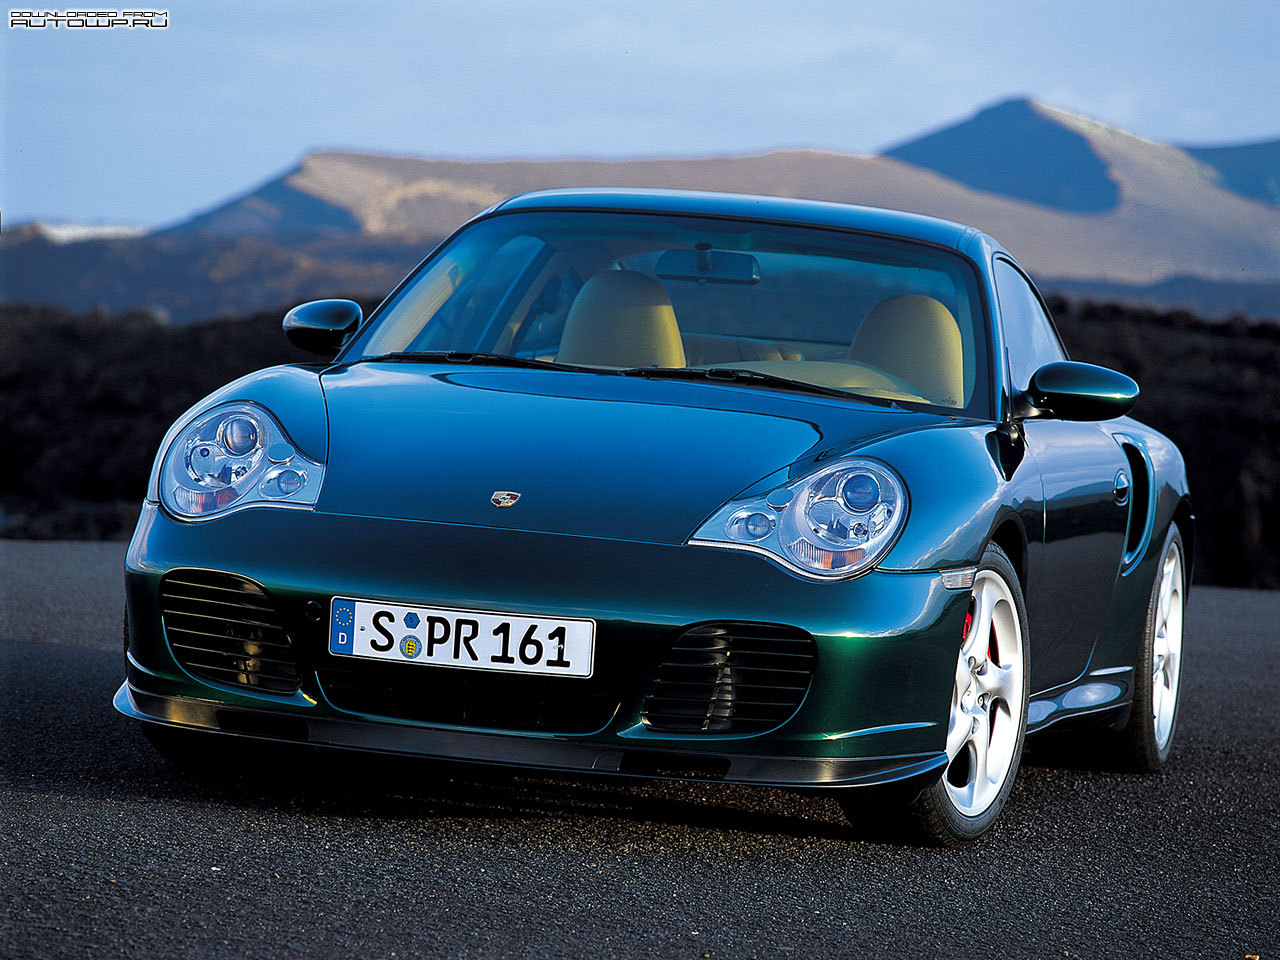 Porsche 911 Turbo (996) photo 75305